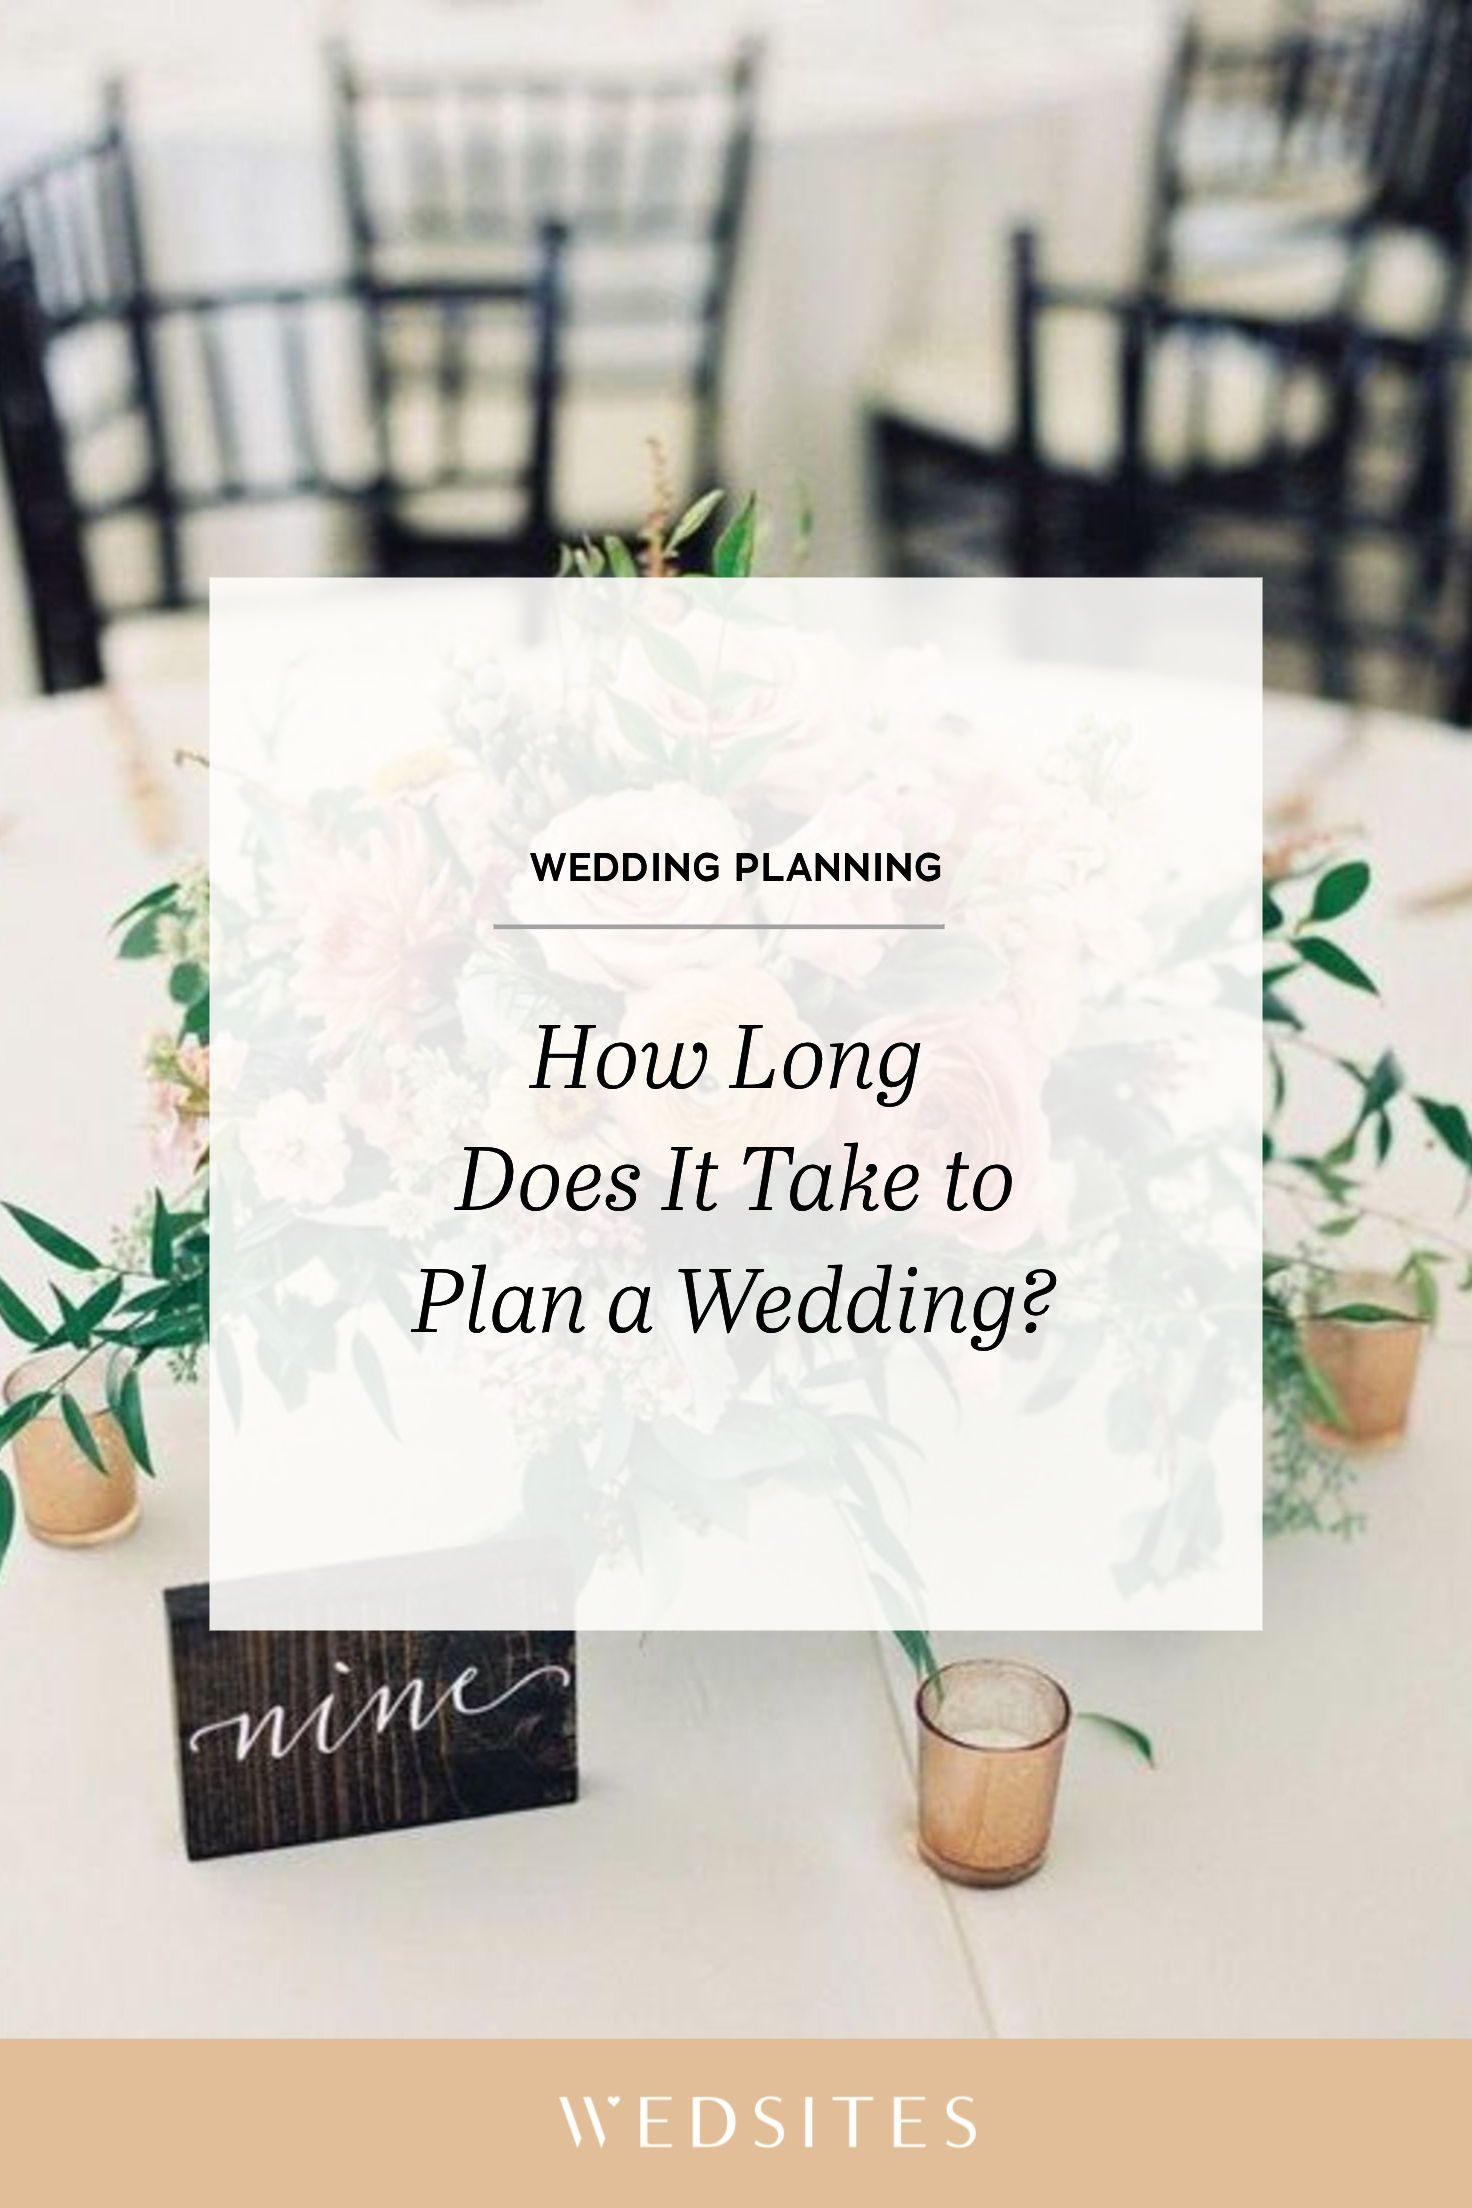 How Long Does It Take To Plan A Wedding 6 Important Things To Take Into Consideration In 2020 Wedding Planning Stress Wedding Planning Wedding Planning Apps